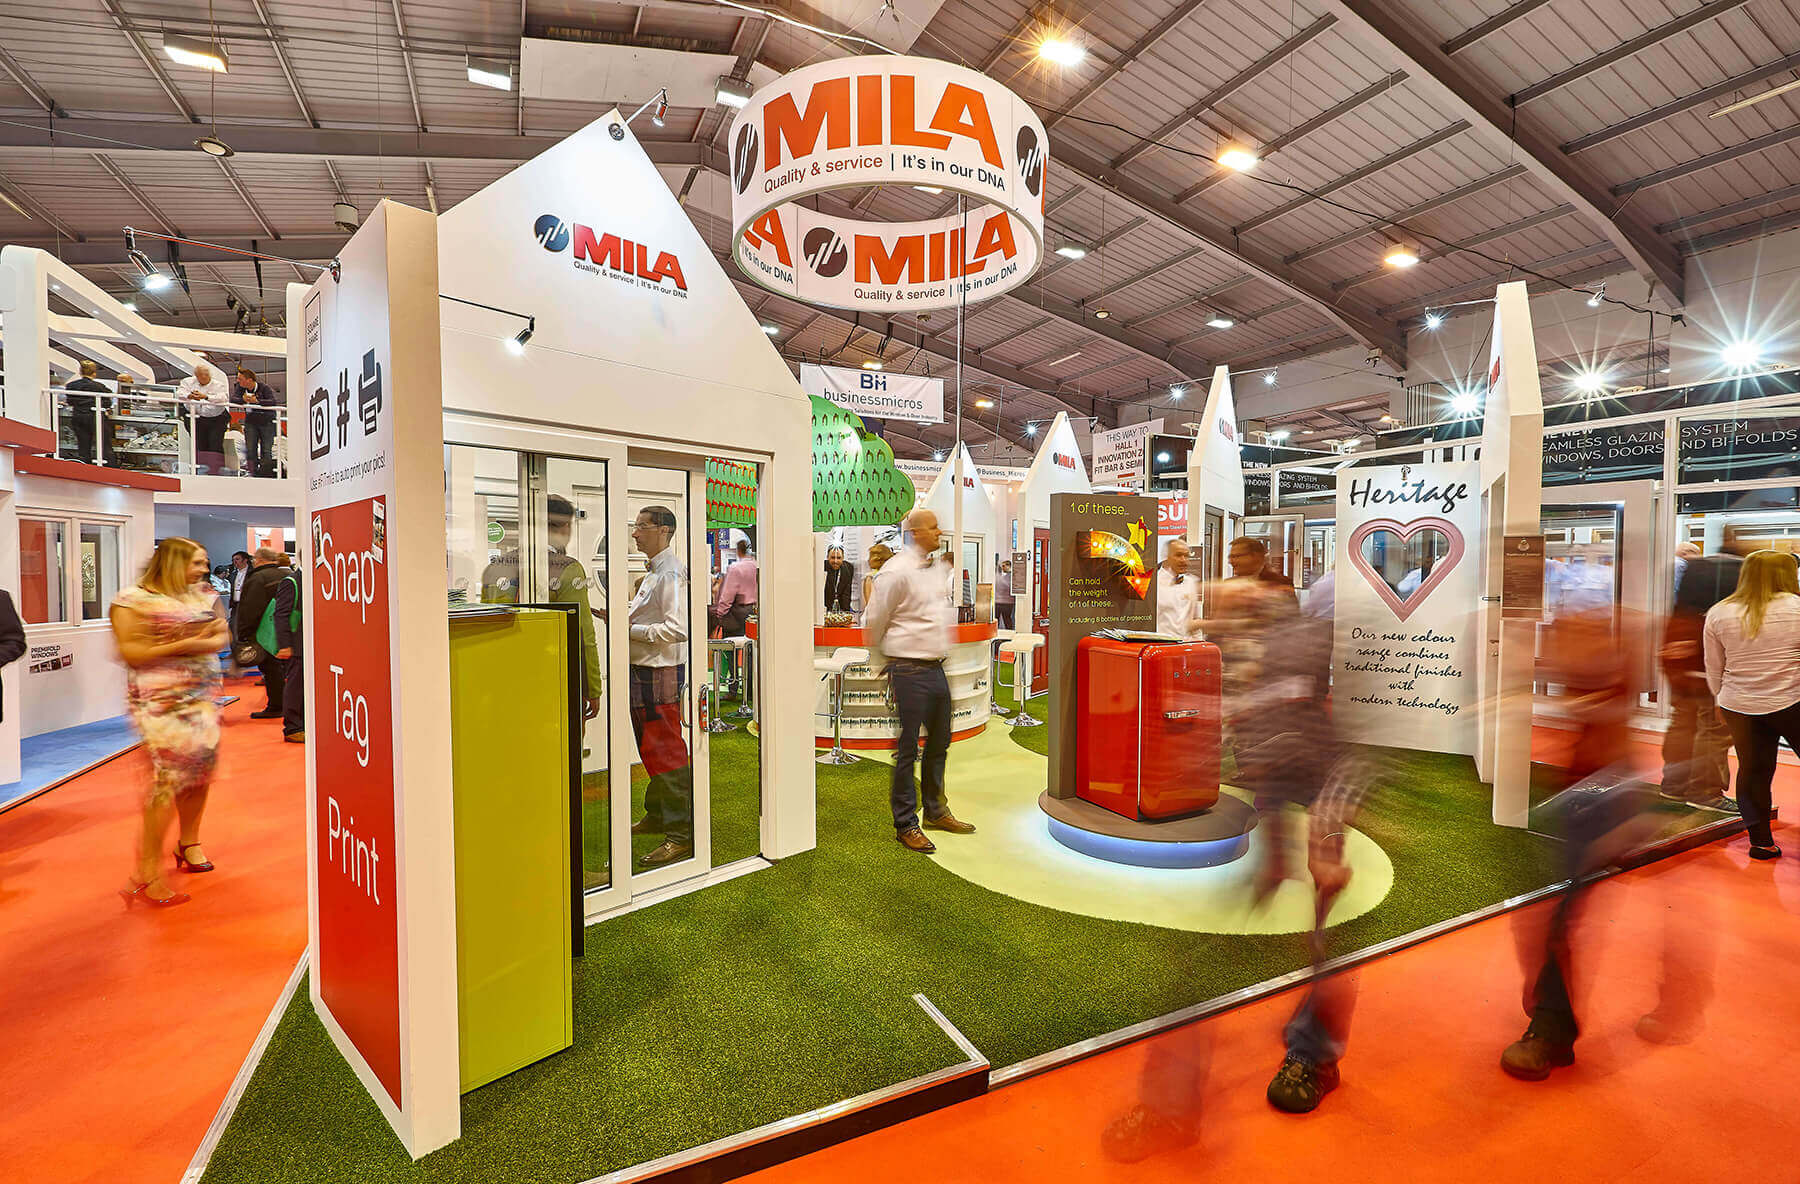 MILA359 After the success of 20162c Mila is back at the FIT Show in 2019